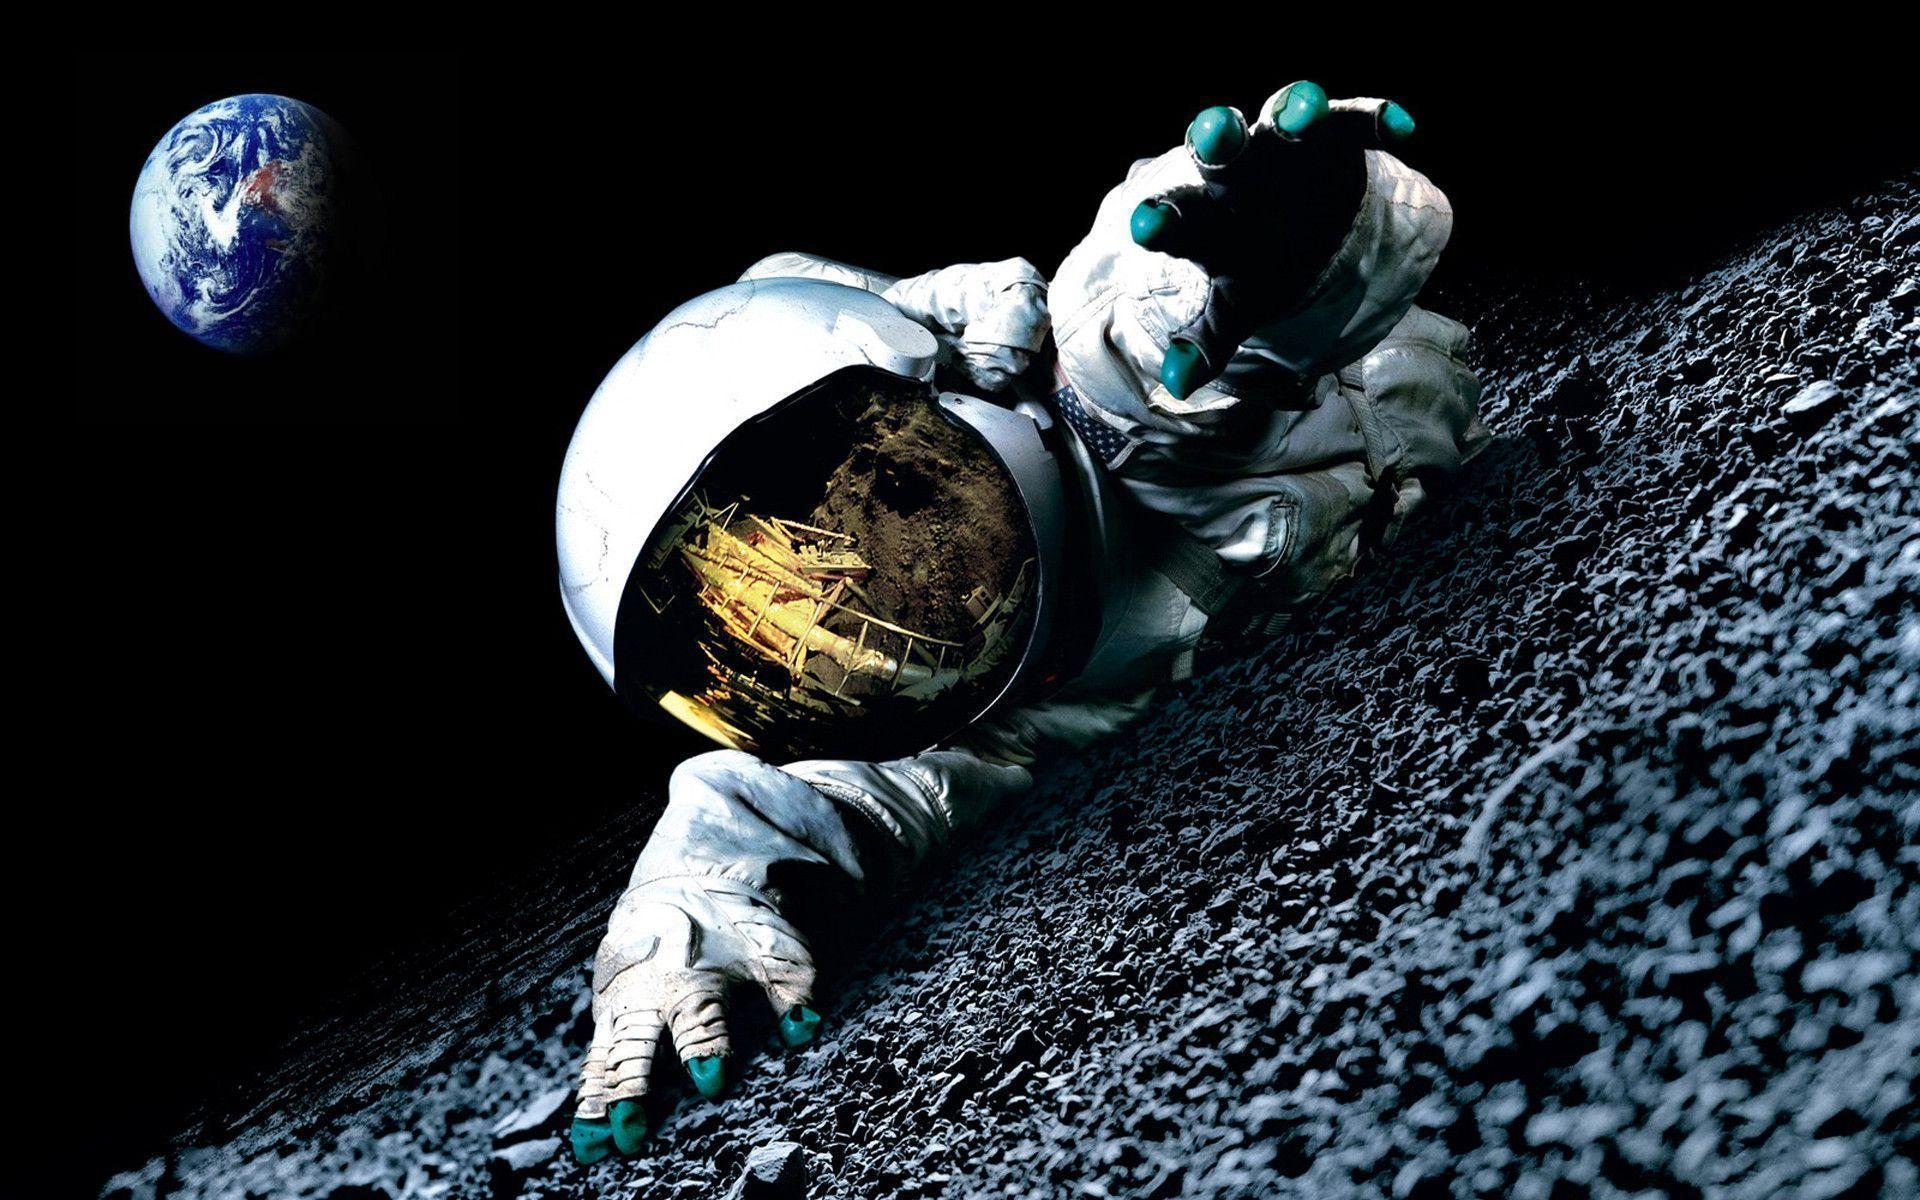 Cool Astronaut Wallpapers   Top Cool Astronaut Backgrounds 1920x1200